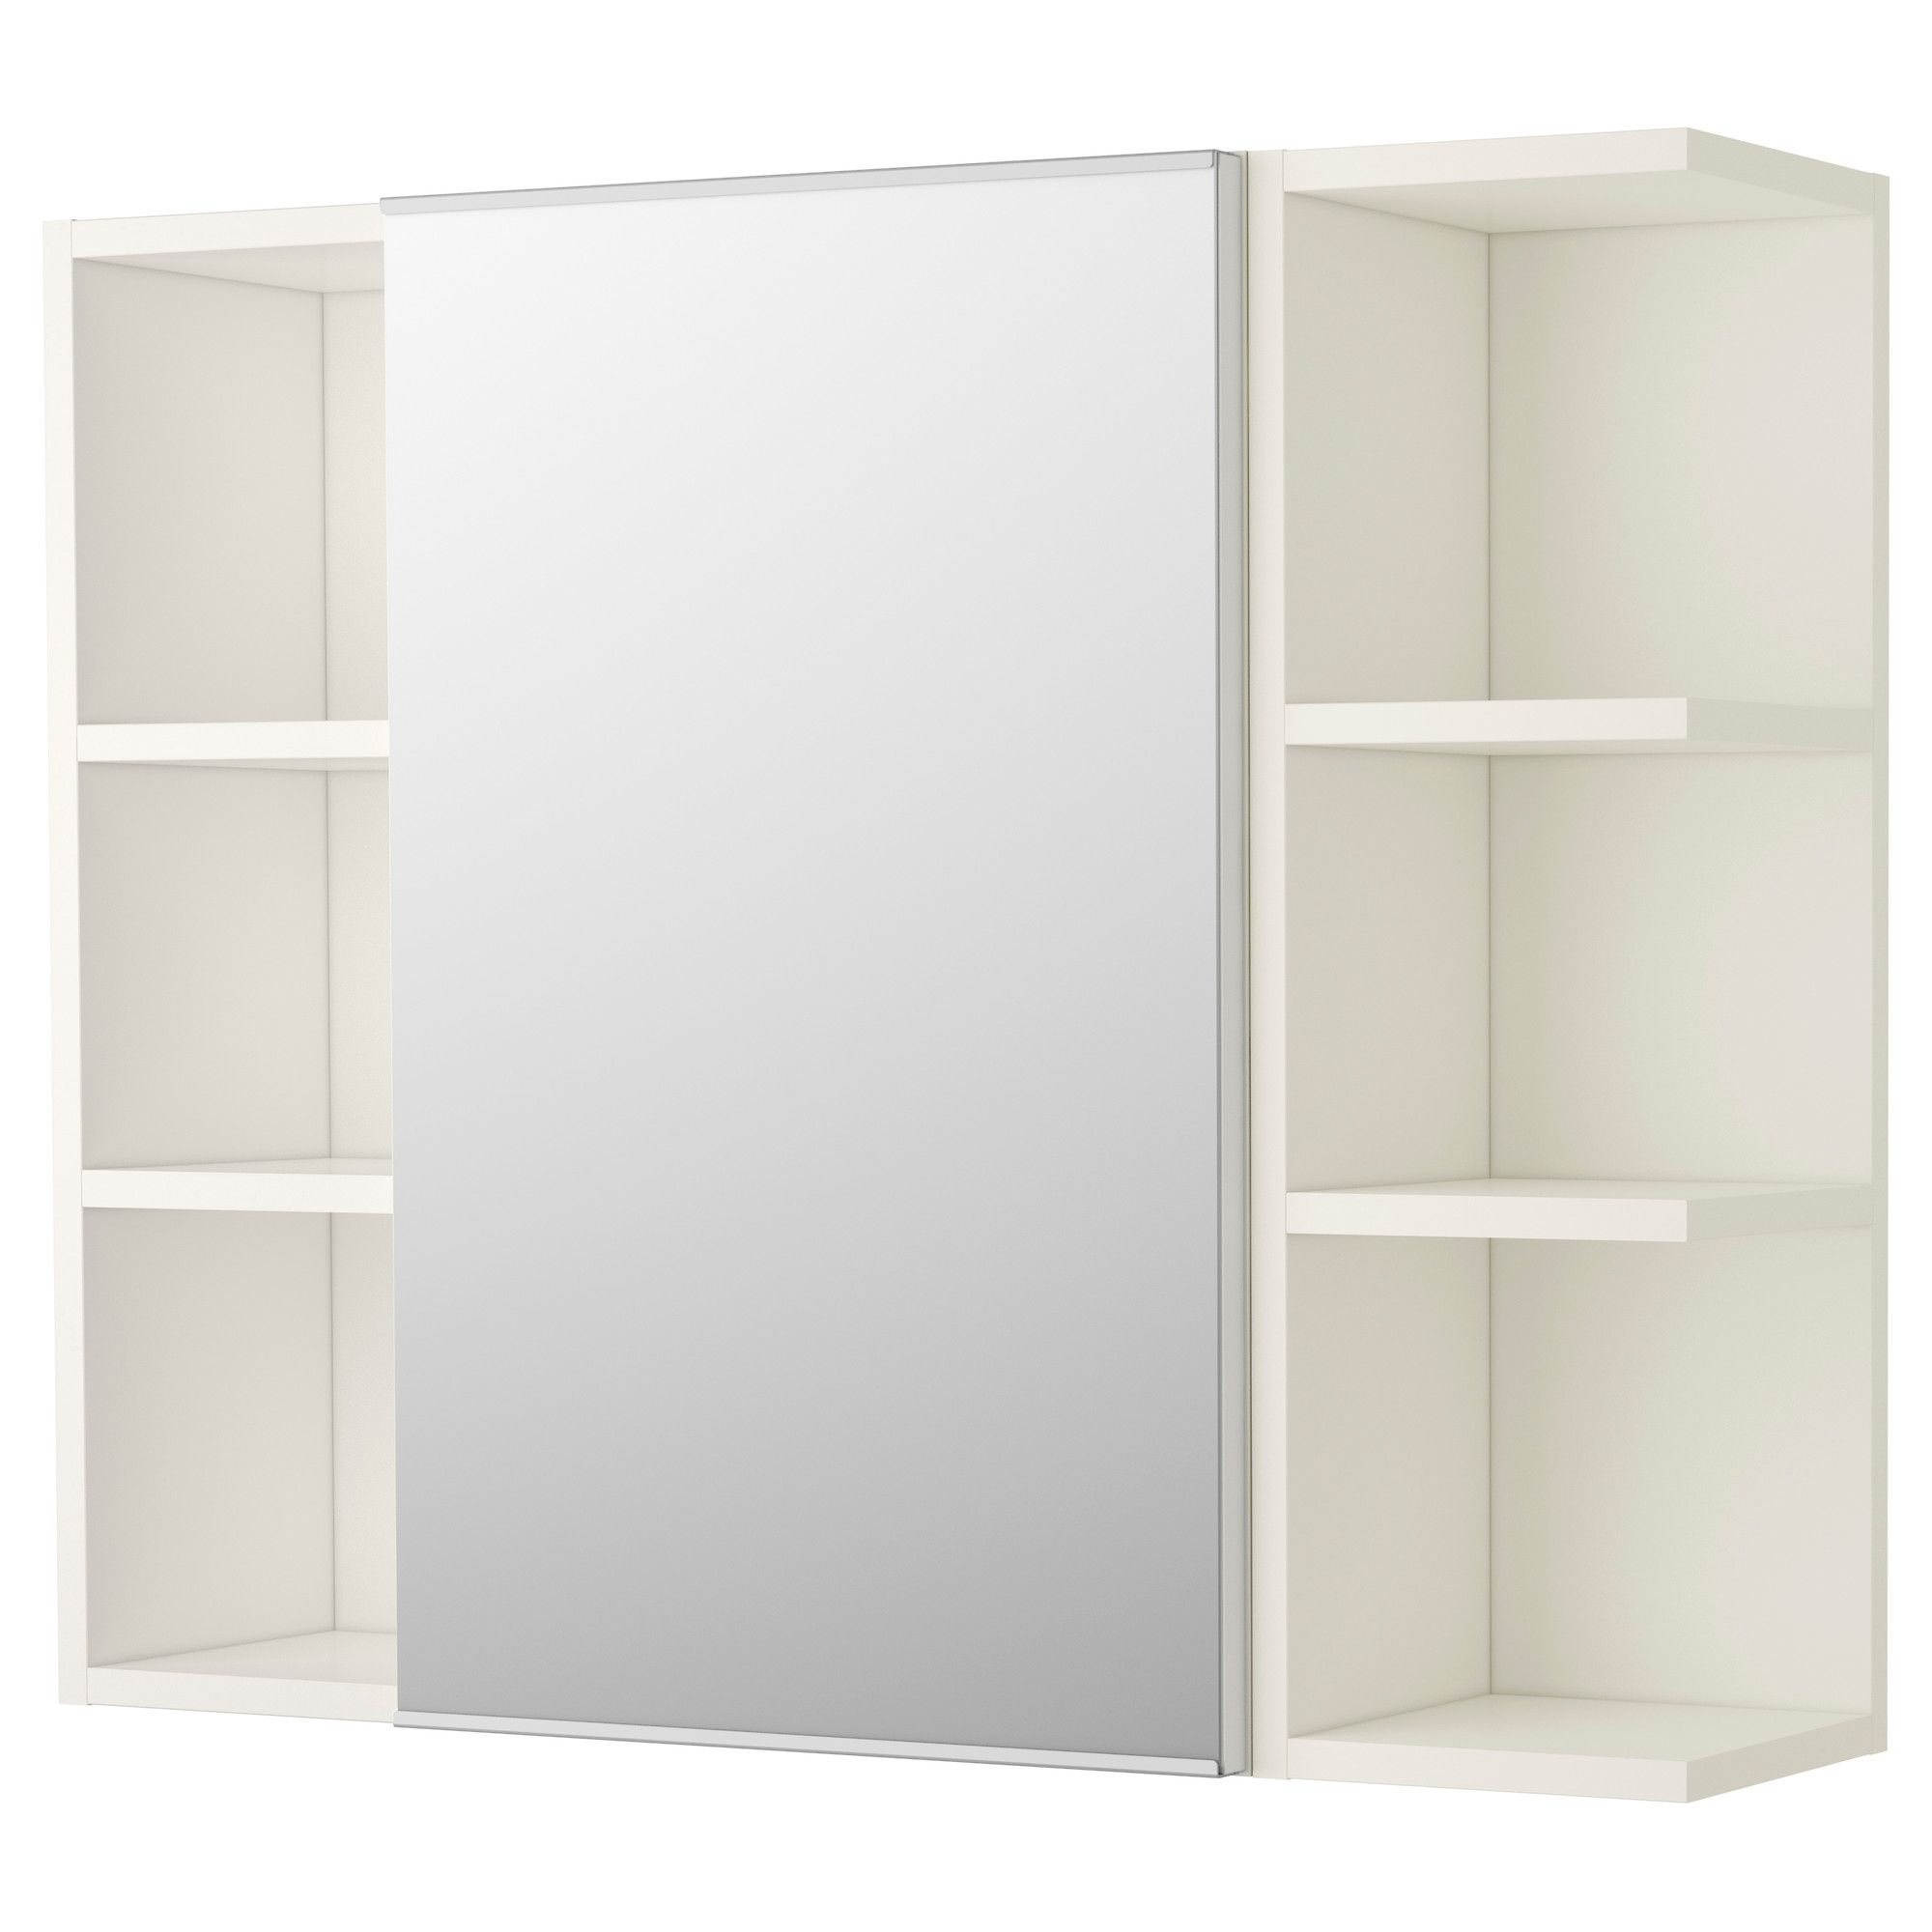 Lillangen Mirror Cabinet 1 Door 2 End Units White 30 3 4x8 1 4x25 1 4 Ikea In 2020 Ikea Bathroom Mirror Bathroom Mirror Cabinet Ikea Bathroom Storage